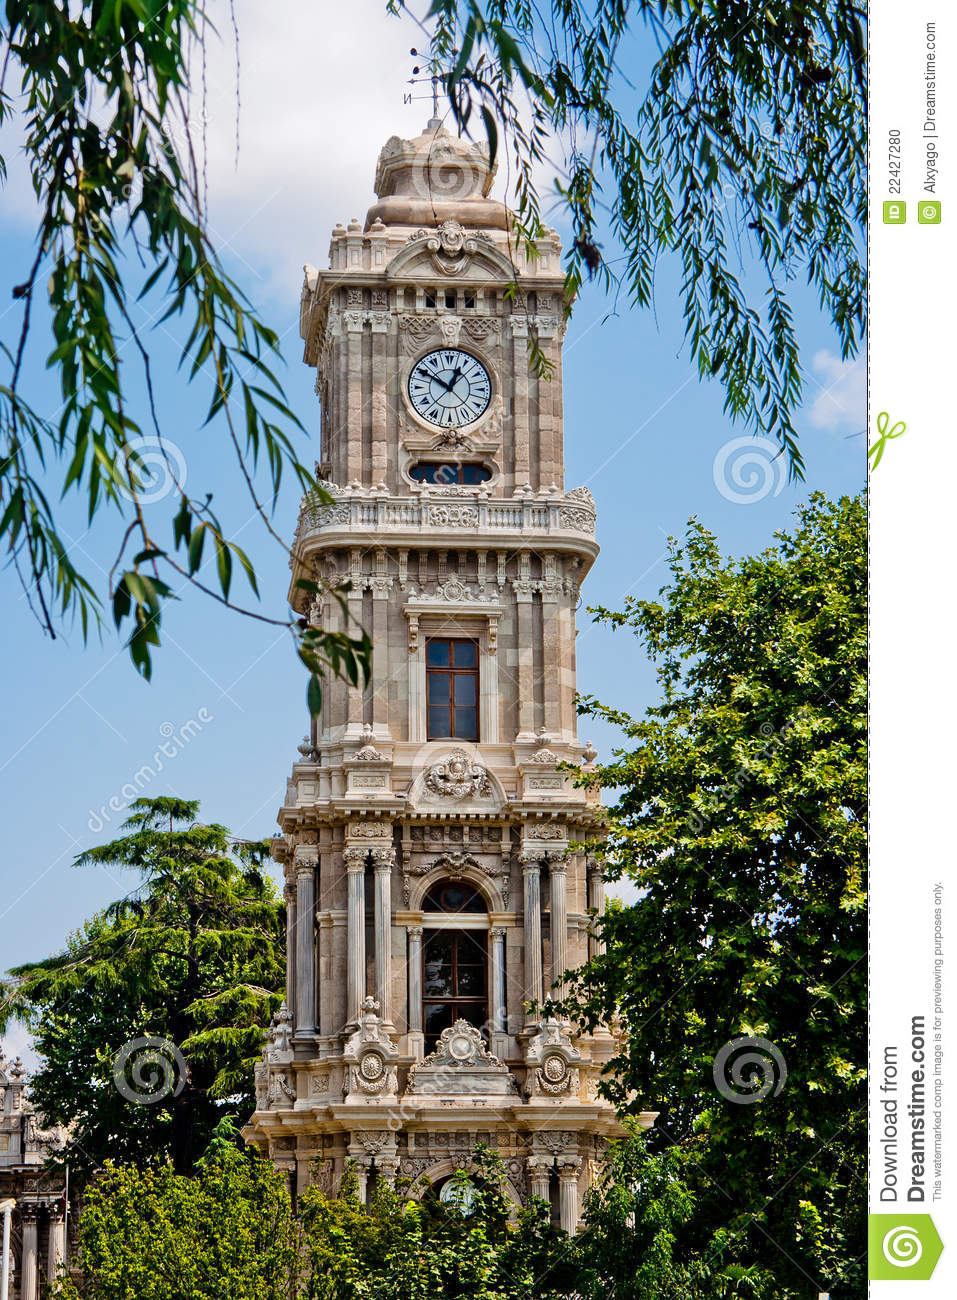 Dolmabahce Clock Tower Stock Photo - Image: 22427280